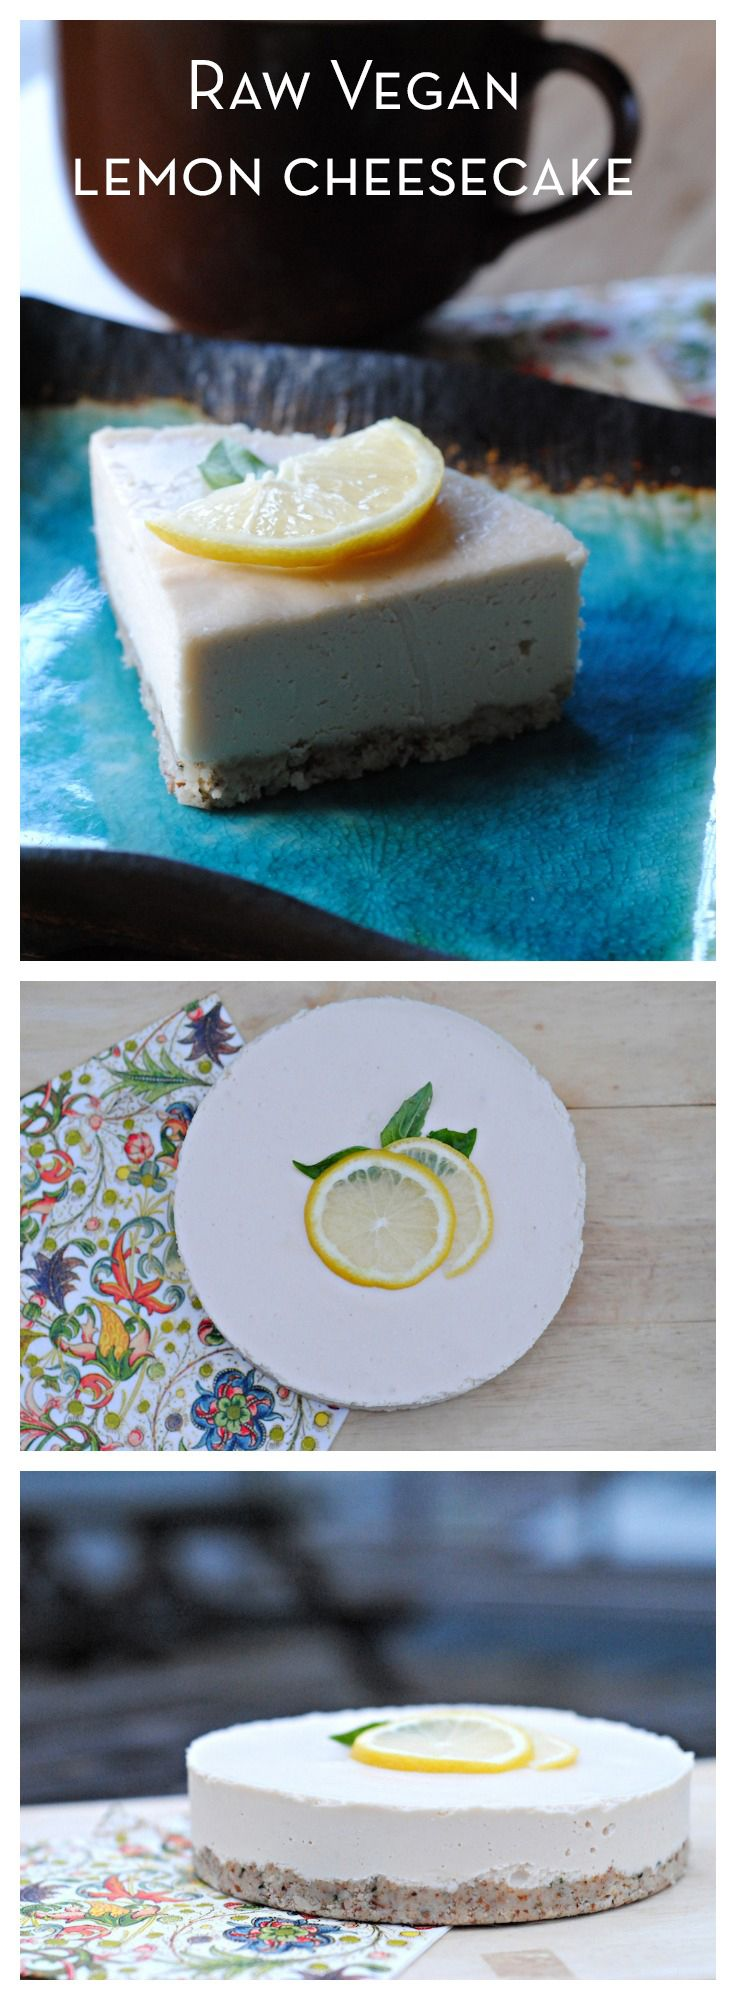 Raw Vegan Lemon Cheesecake. My friends rave about this recipe because it's easy and satisfying. http://theblenderist.com/raw-vegan-lemon-cheesecake/